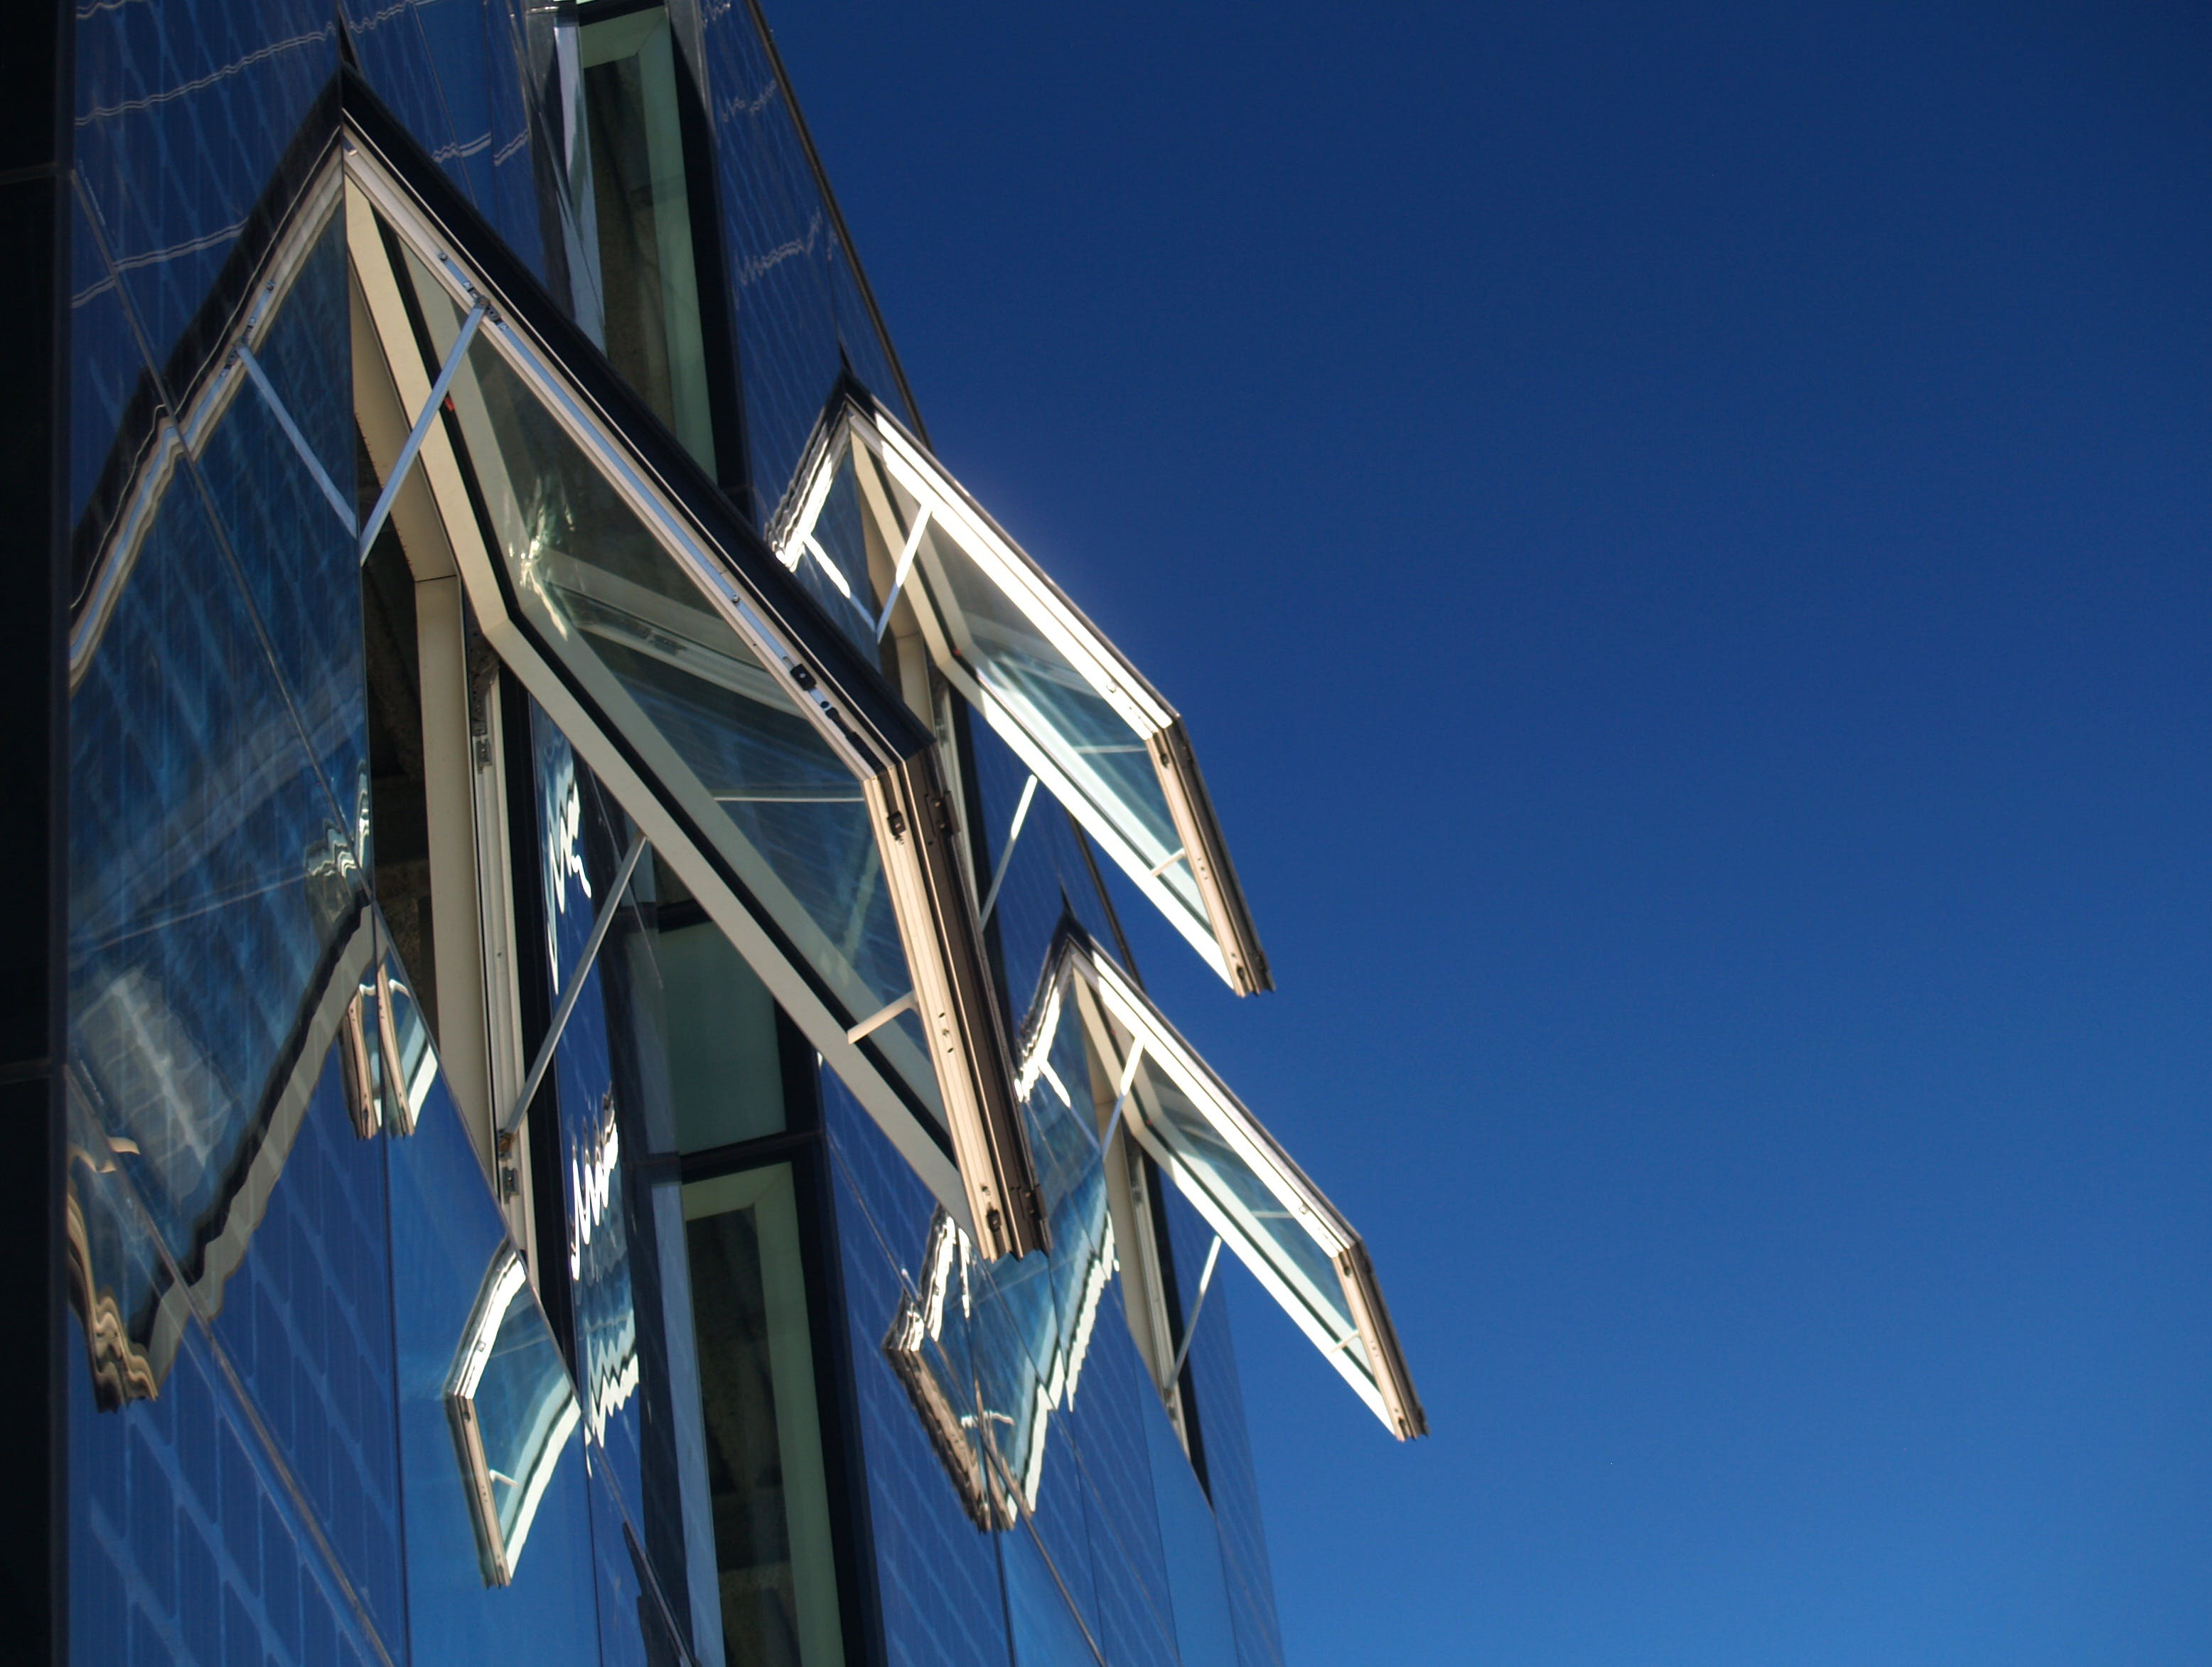 Free stock photo of sky, blue, glass, architecture